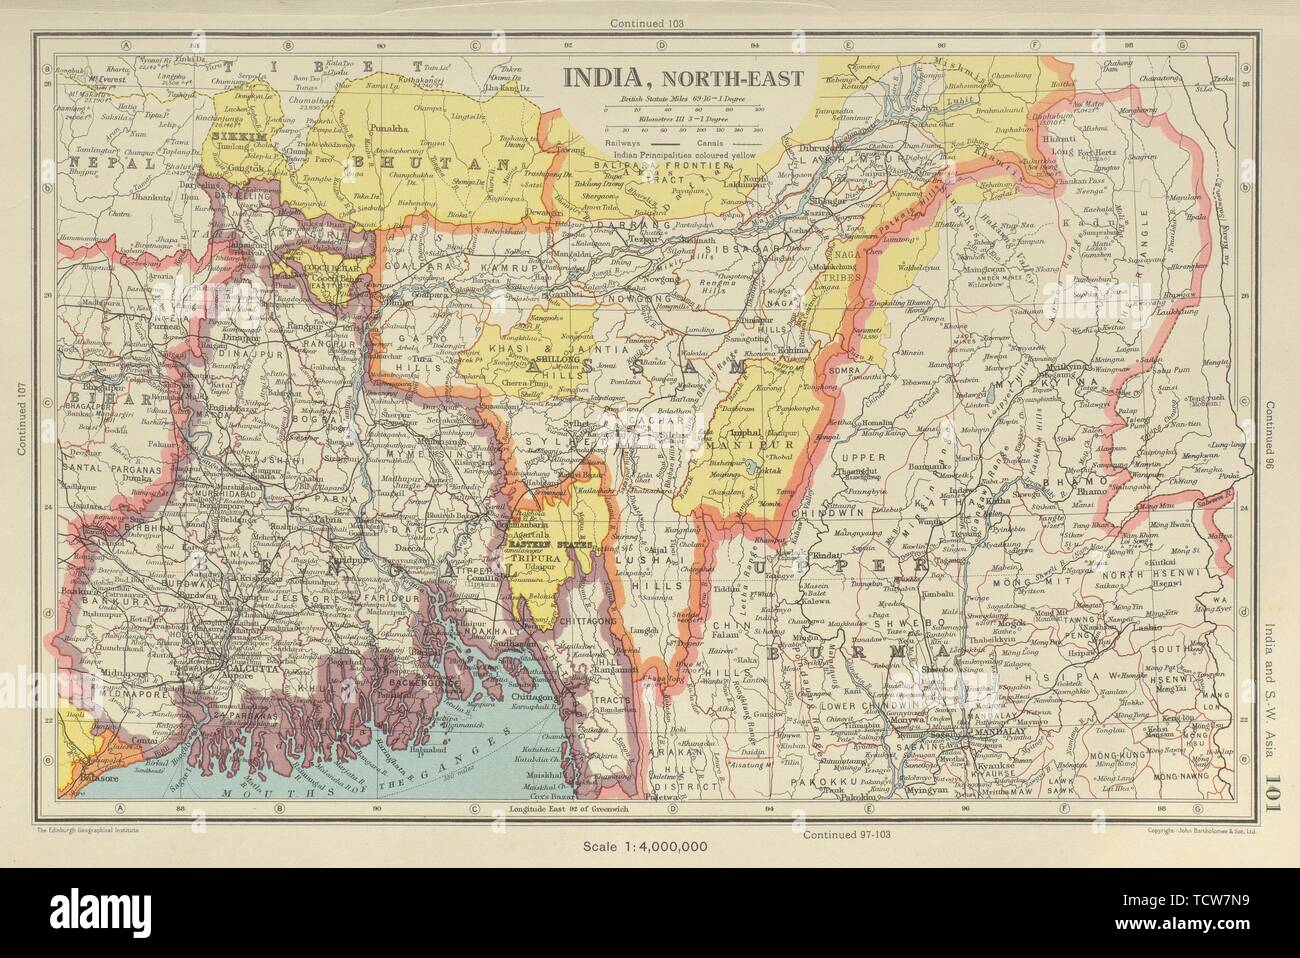 Map Of Upper Asia.Assam India Asia Map Stock Photos Assam India Asia Map Stock